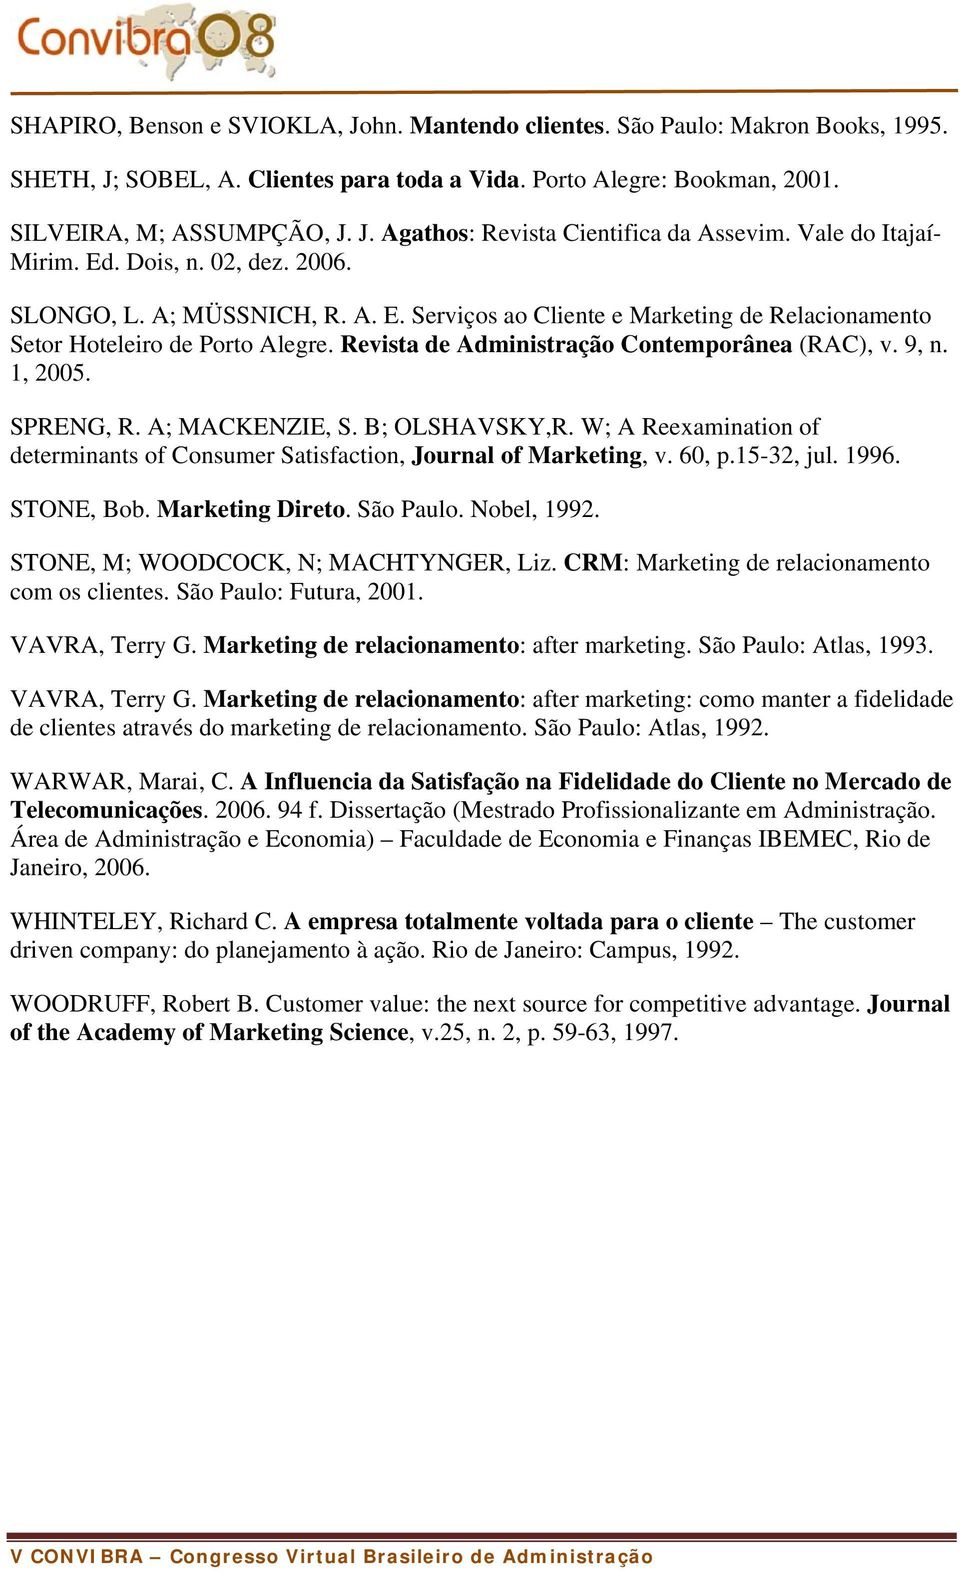 Revista de Administração Contemporânea (RAC), v. 9, n. 1, 2005. SPRENG, R. A; MACKENZIE, S. B; OLSHAVSKY,R. W; A Reexamination of determinants of Consumer Satisfaction, Journal of Marketing, v. 60, p.